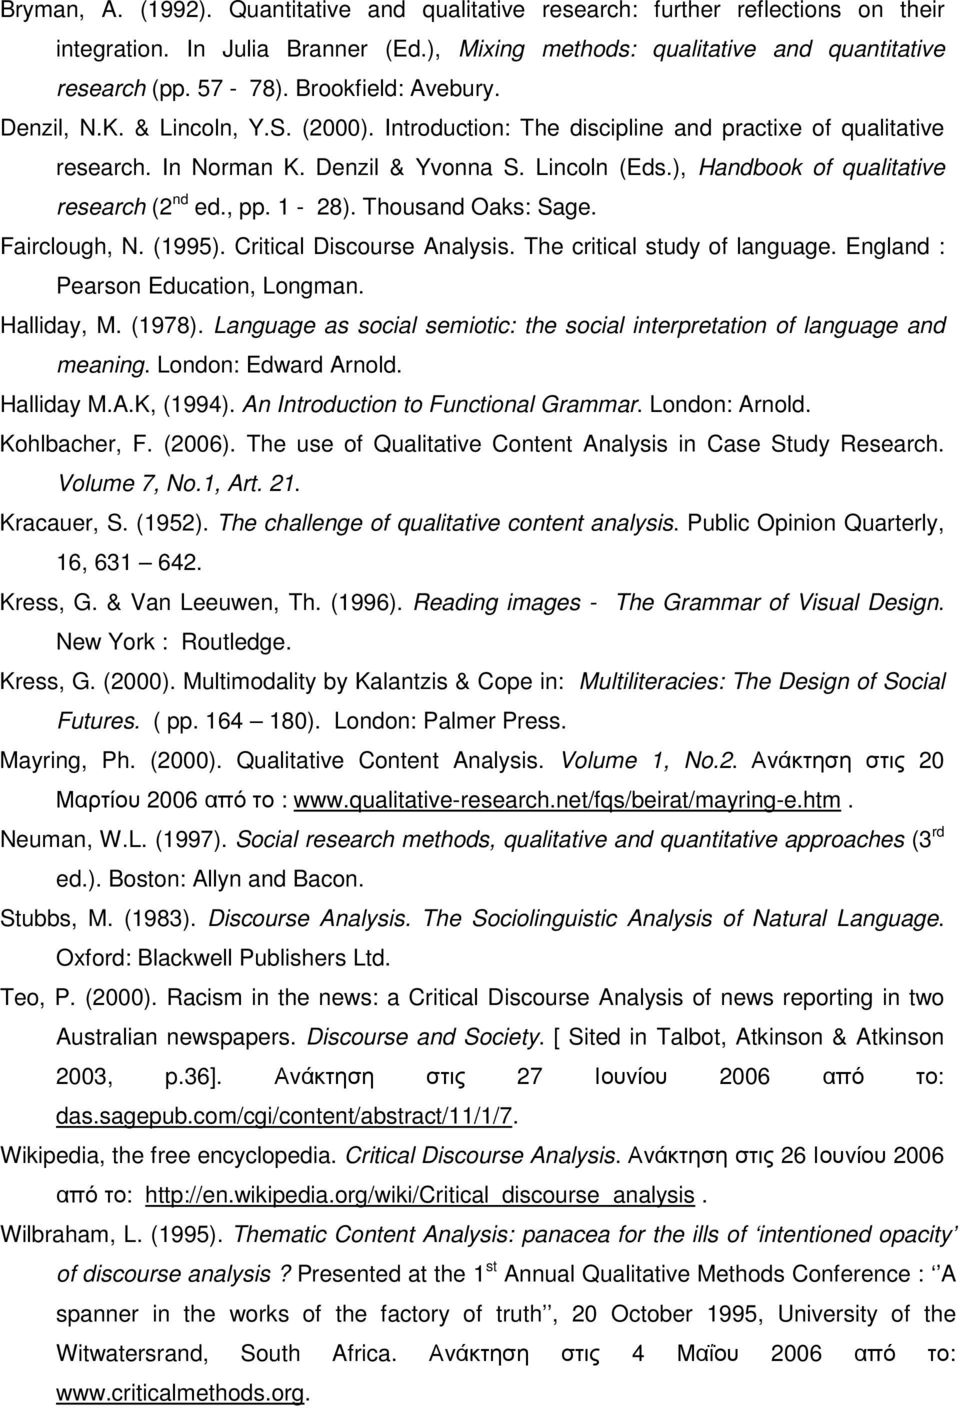 ), Handbook of qualitative research (2 nd ed., pp. 1-28). Thousand Oaks: Sage. Fairclough, N. (1995). Critical Discourse Analysis. The critical study of language. England : Pearson Education, Longman.